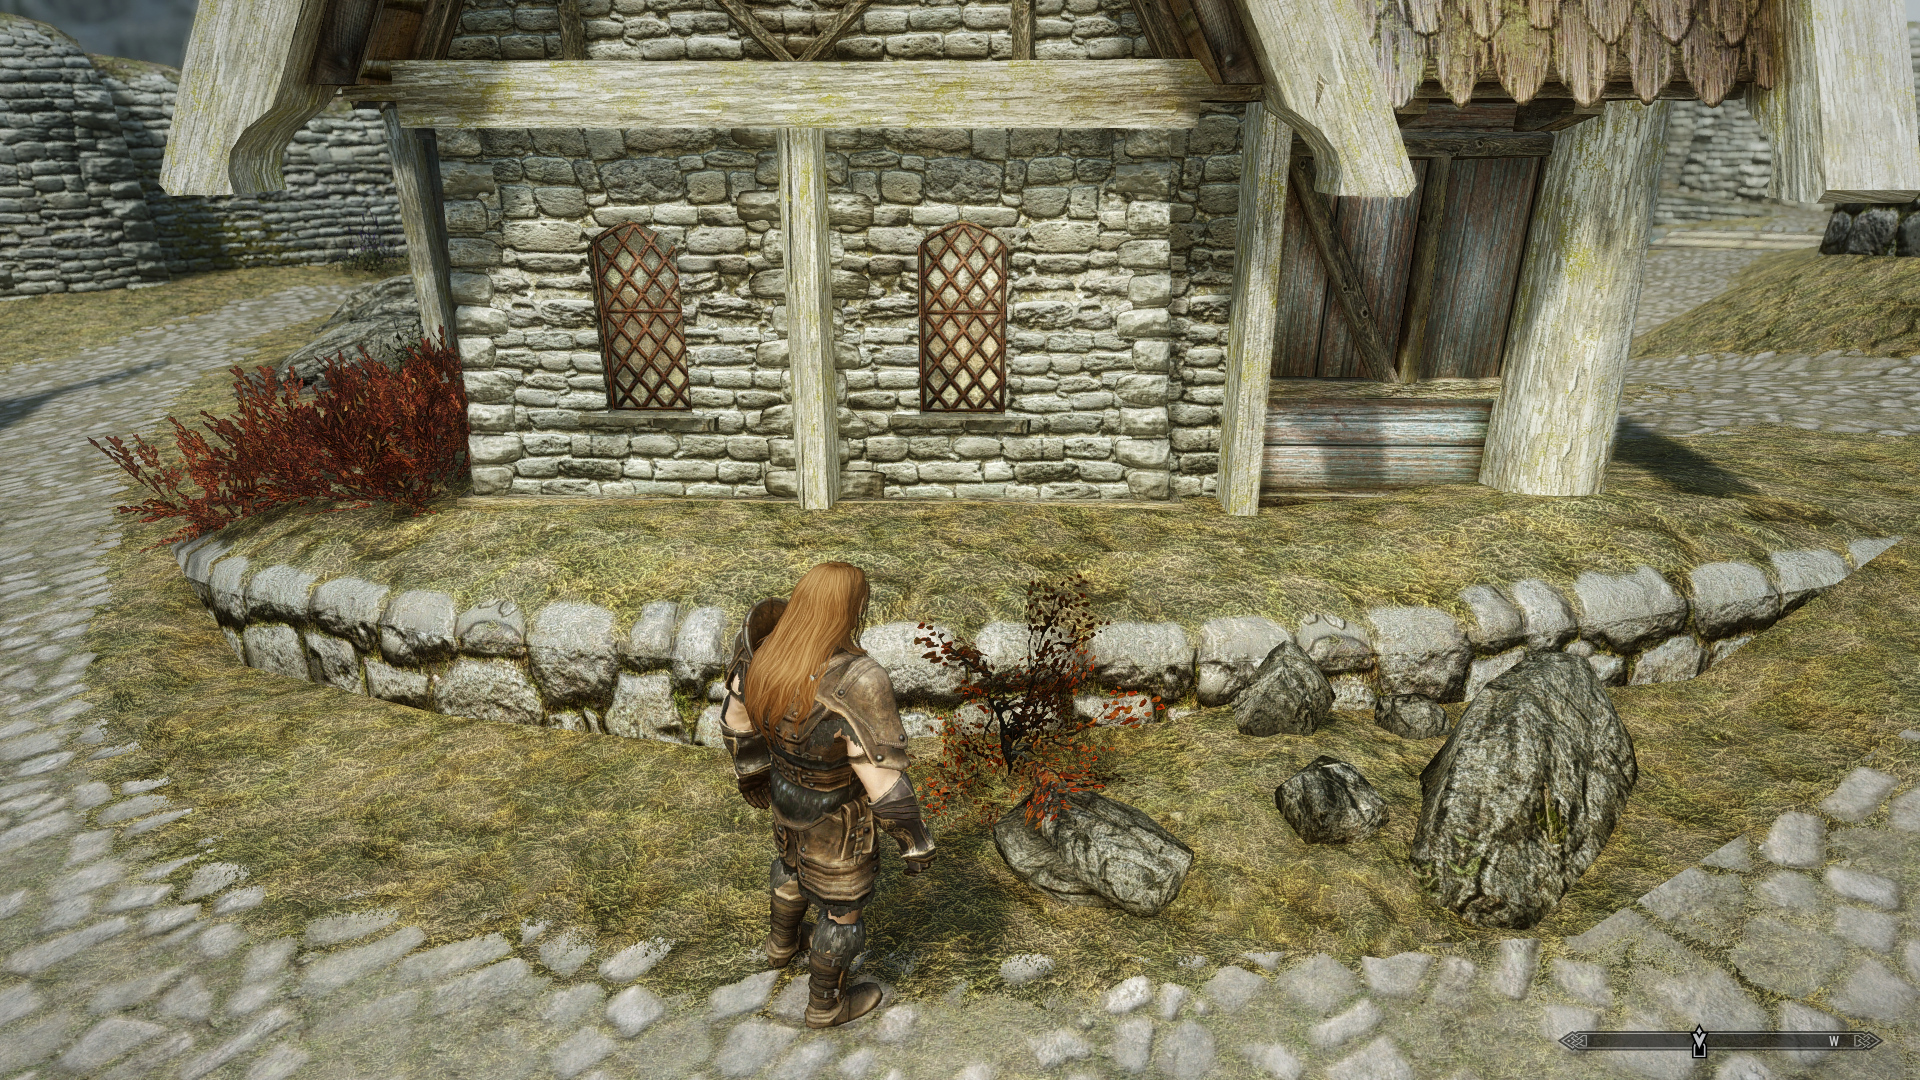 solved] Which mod adds these bushes / trees? - Skyrim